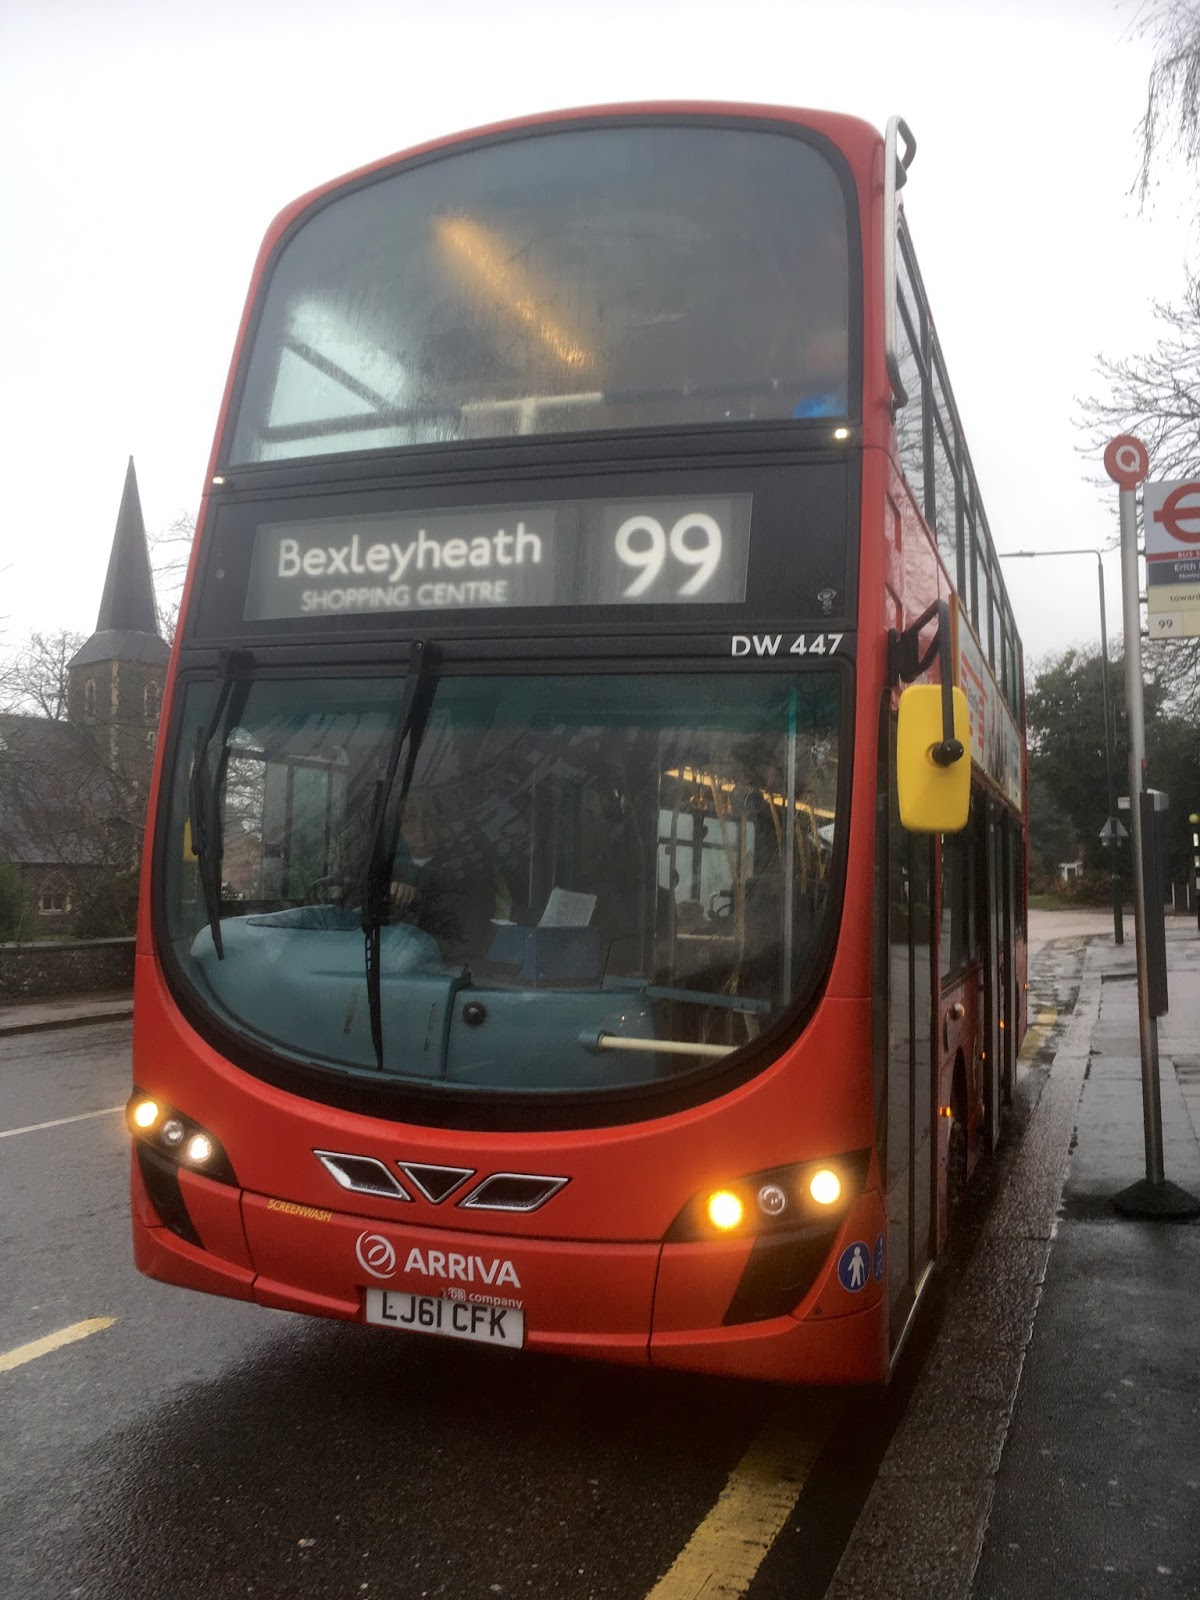 Arriva London DW447 Is Seen On The 99 To Bexleyheath Shopping Centre